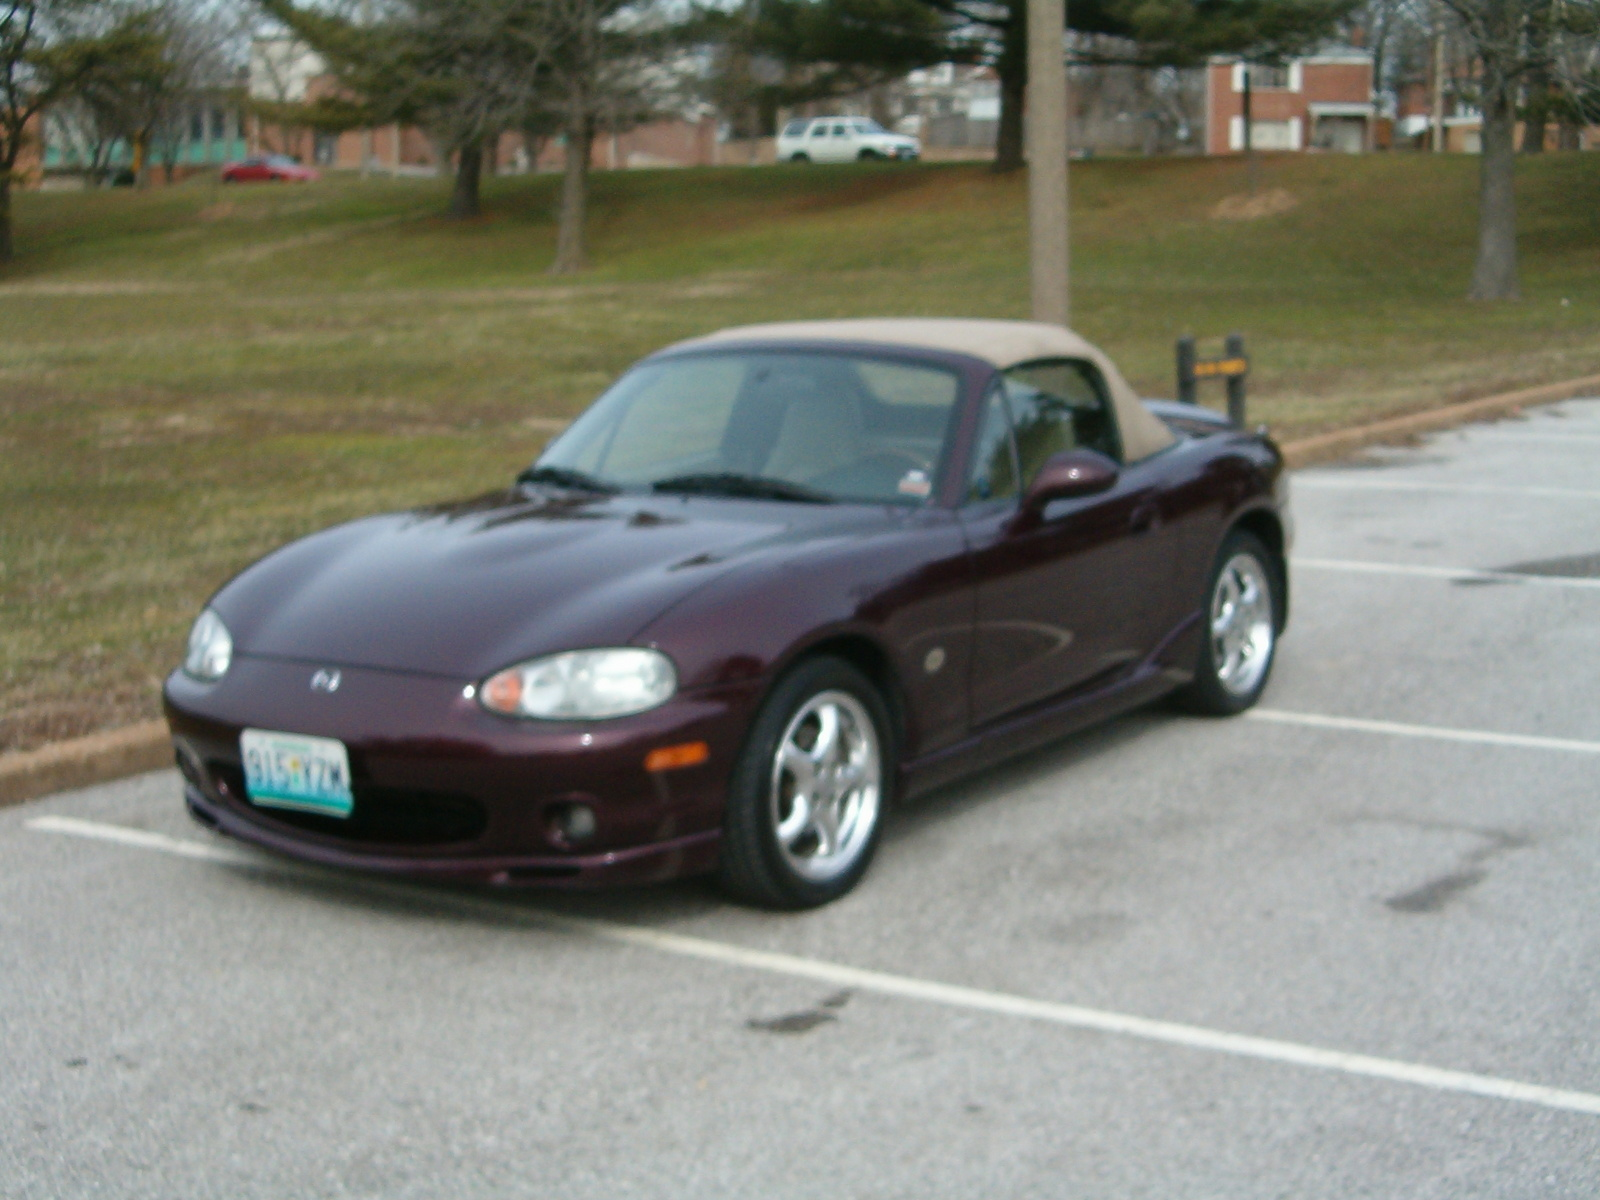 do miata low mx base discussion sell how and pic hardtop i mileage mazda value cars questions